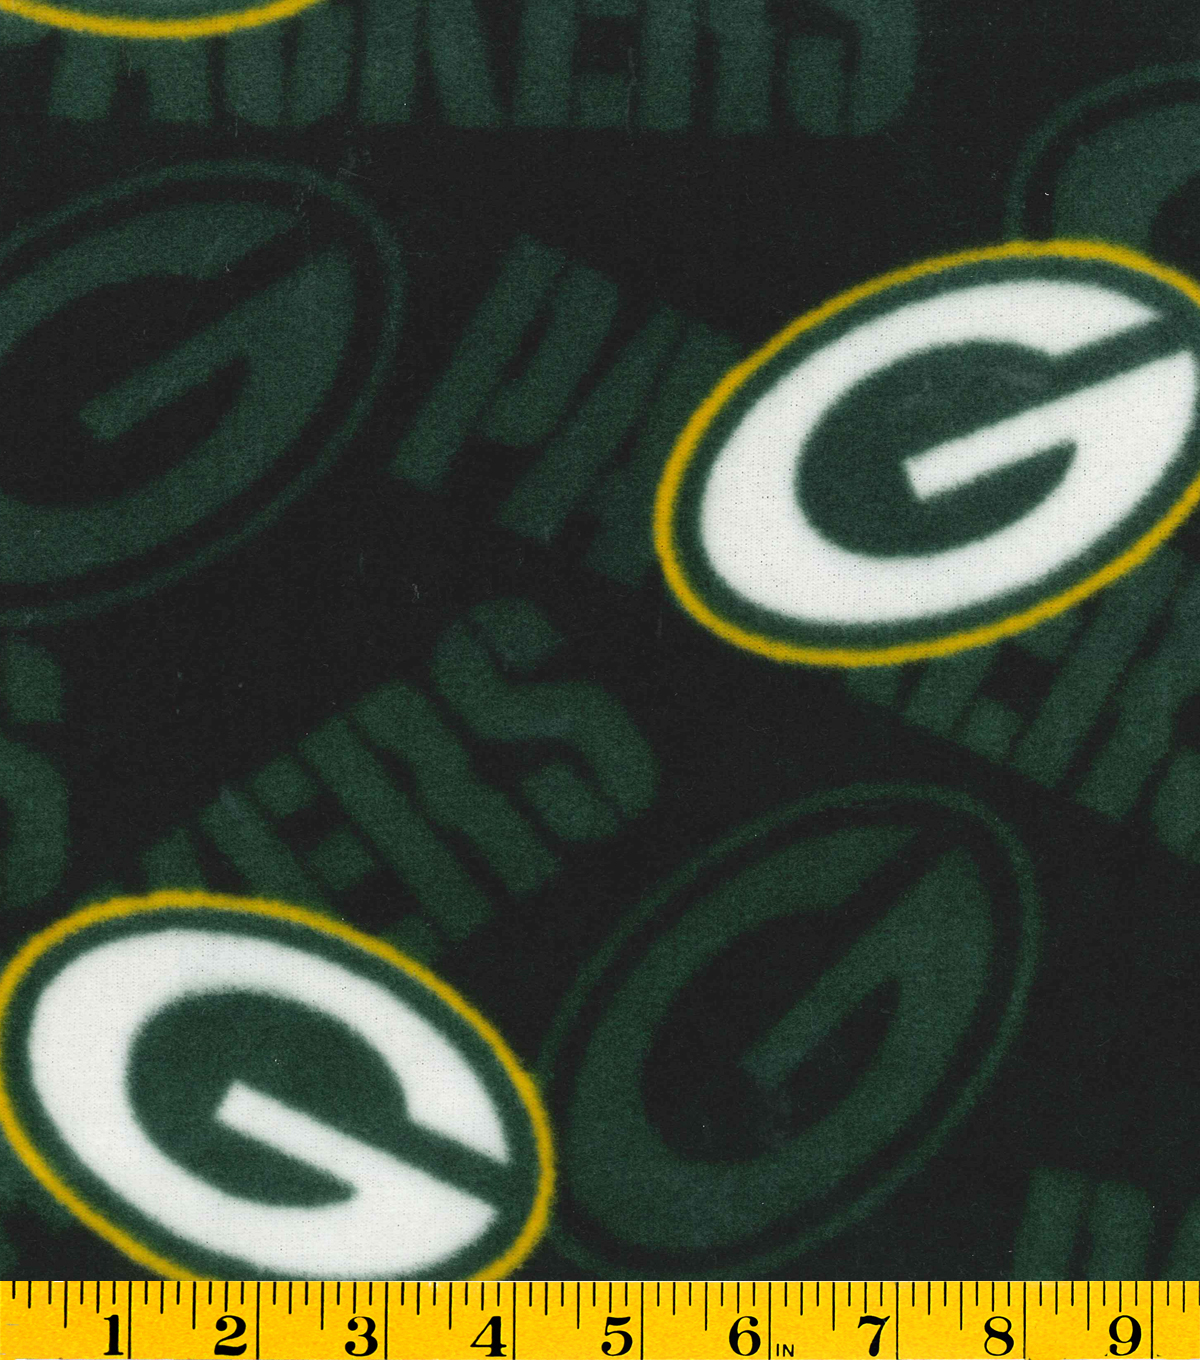 Green Bay Packers Fleece Fabric.